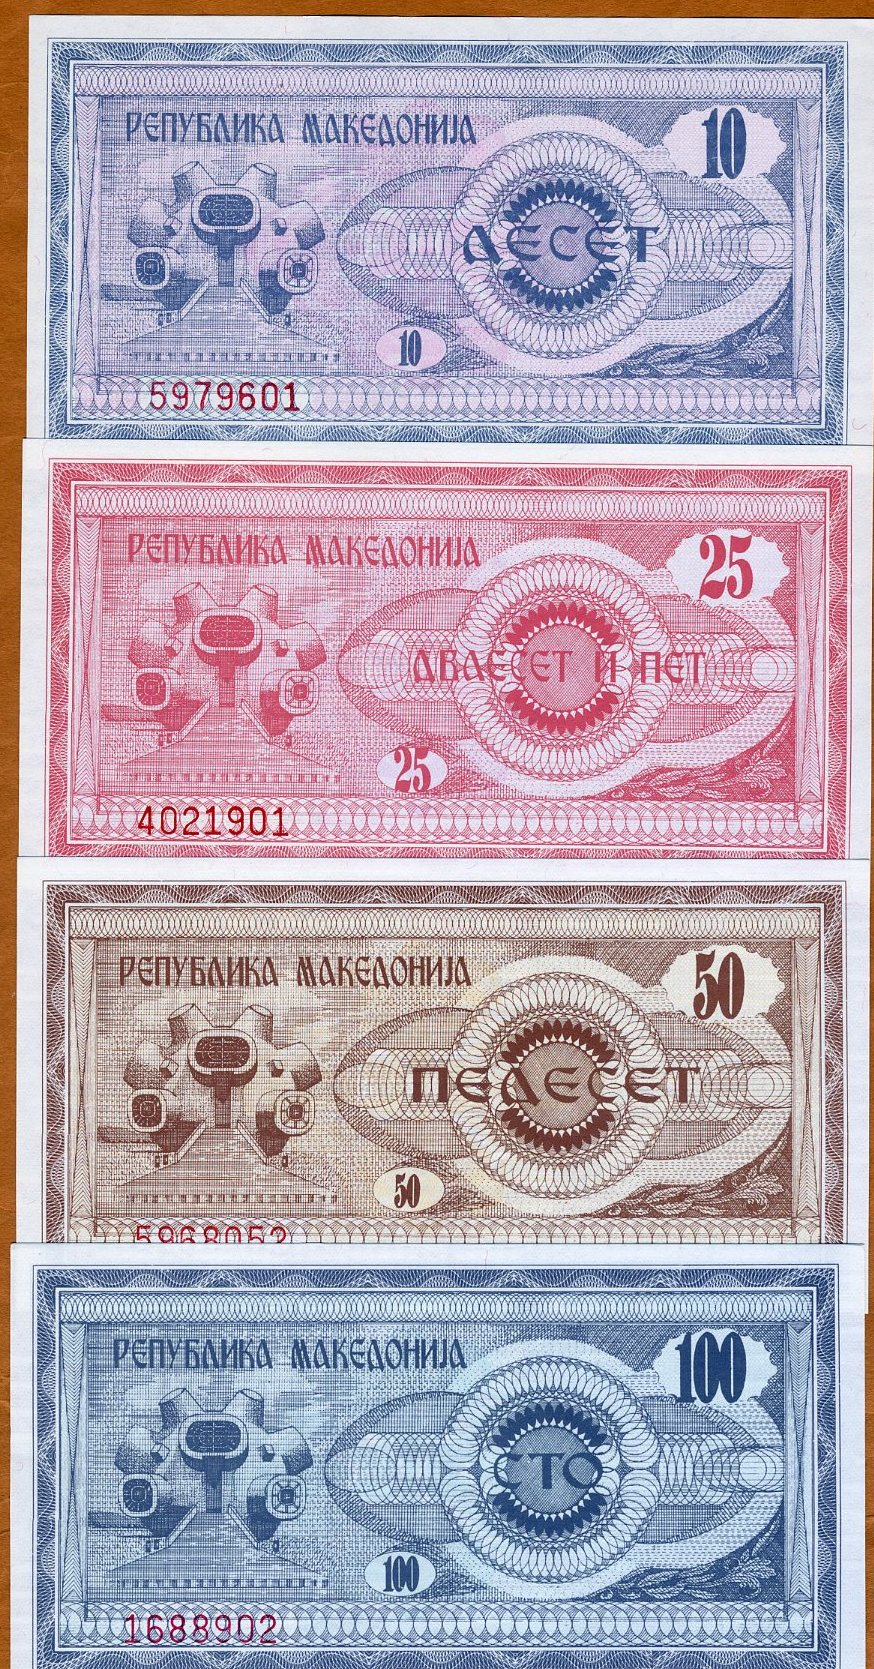 SET Macedonia 10;25;50;100;500;1000;5000;10000 1992 P-1-2-3-4-5-6-7-8 UNC